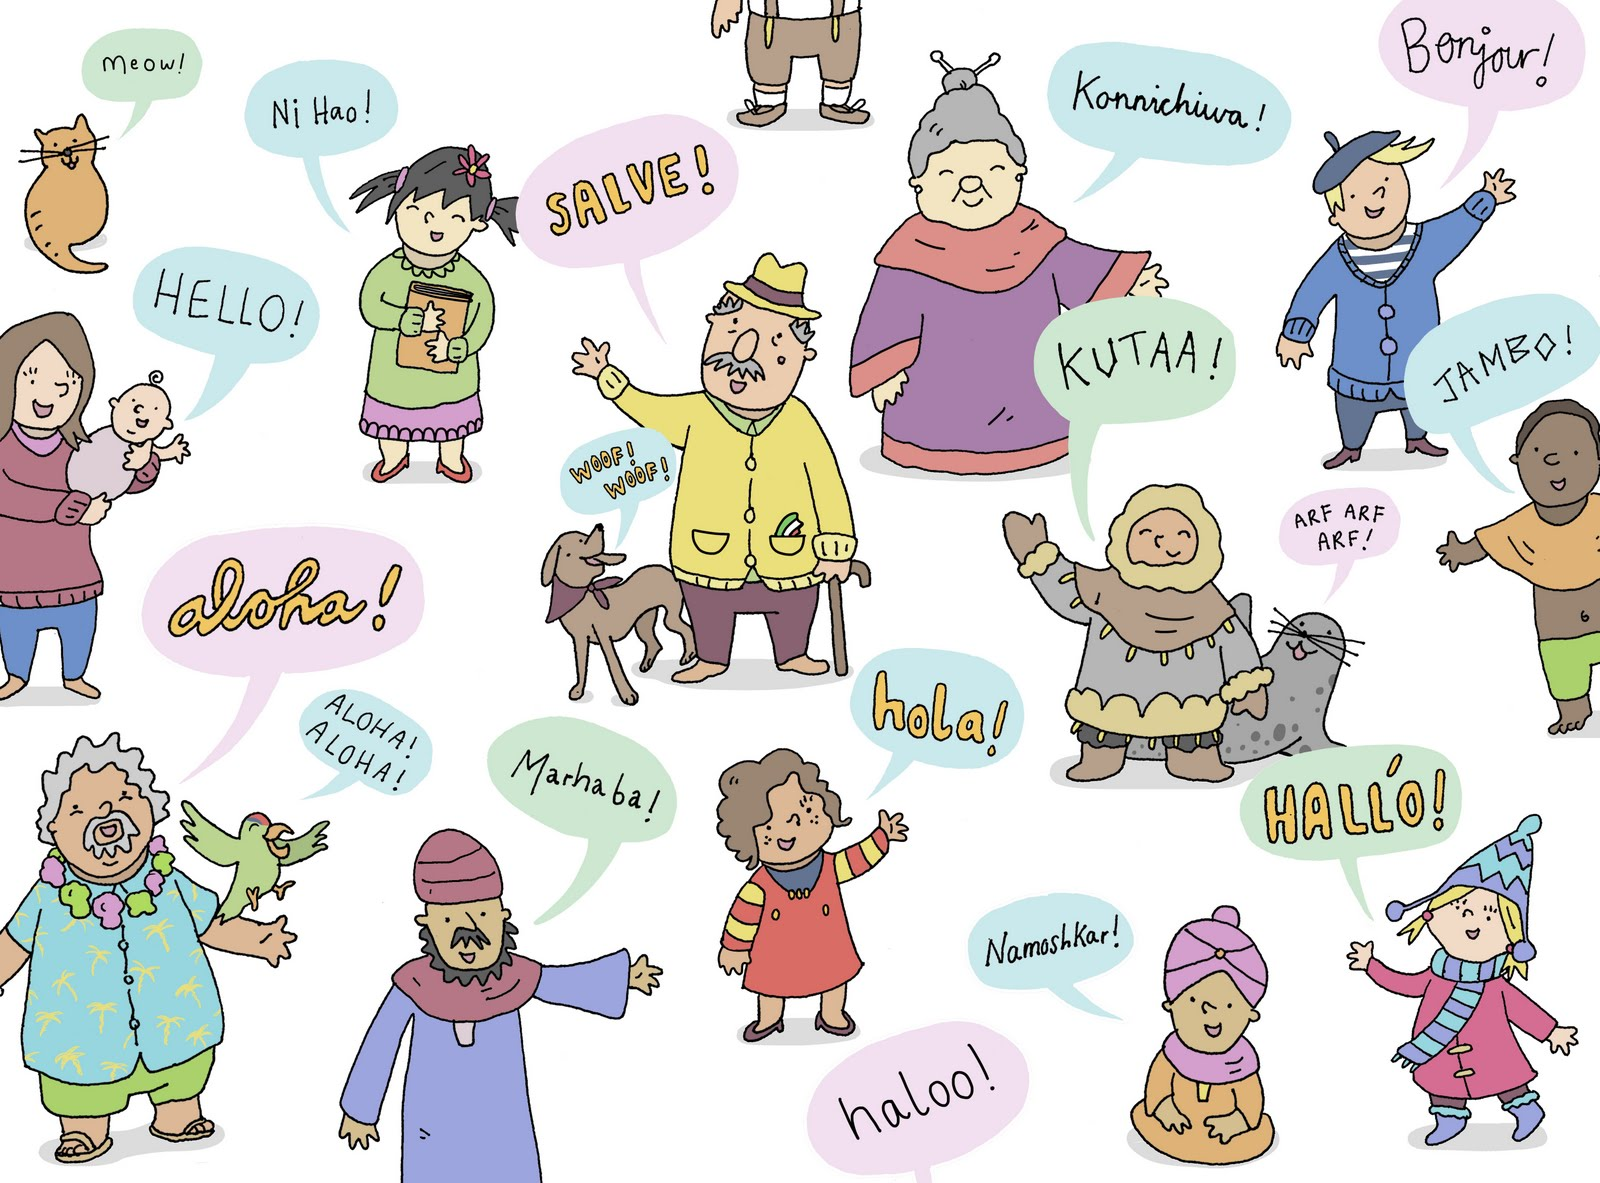 how to say hello in different languages image